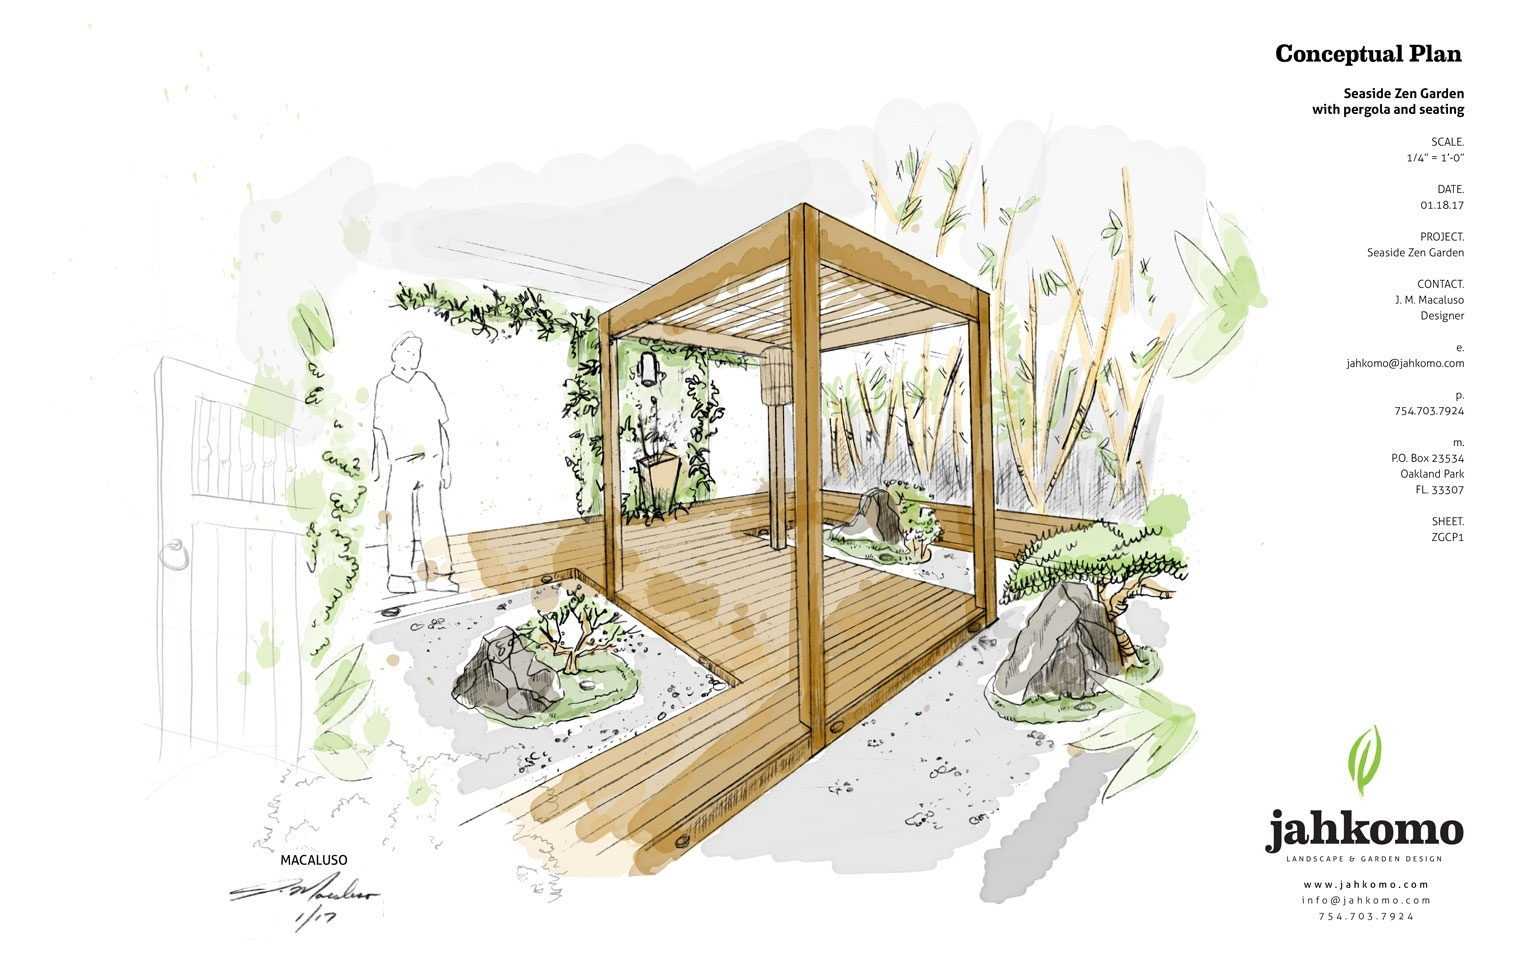 Zen Garden Landscape Design - Jahkomo with regard to Zen Garden Landscape Design